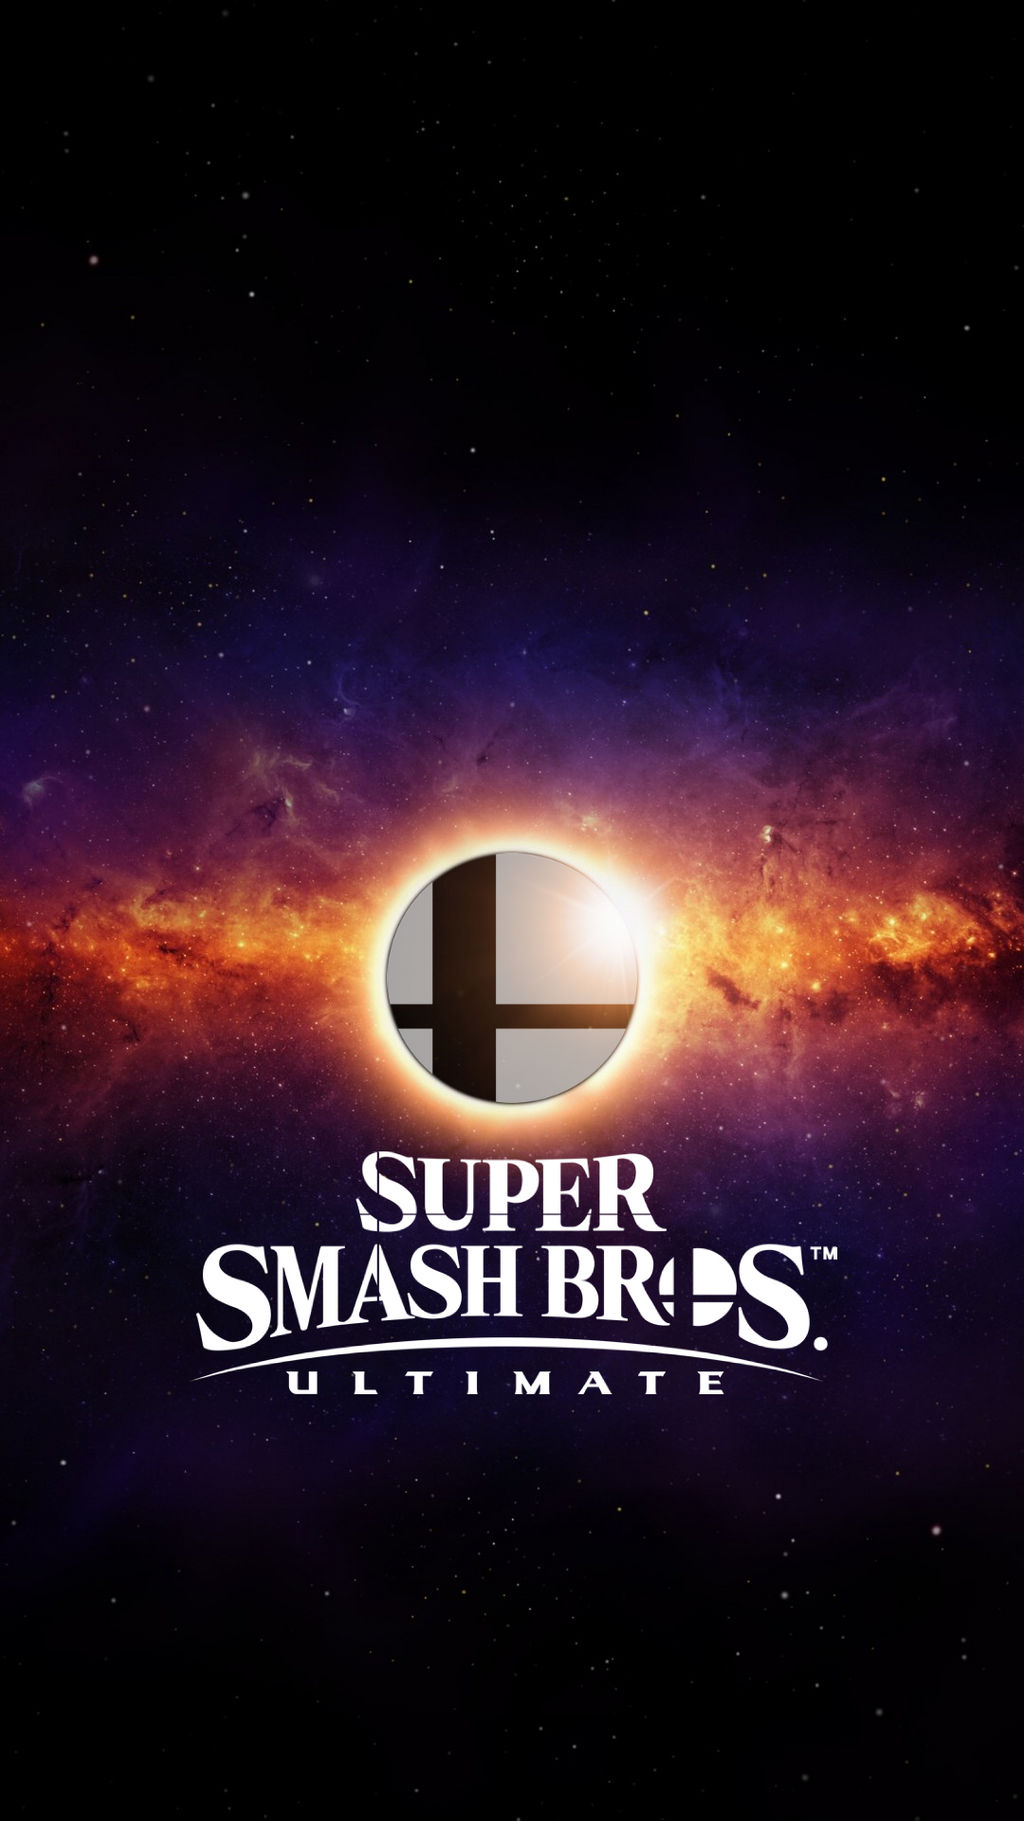 Super Smash Bros Ultimate Mobile Wallpaper 1 By Thewolfbunny On